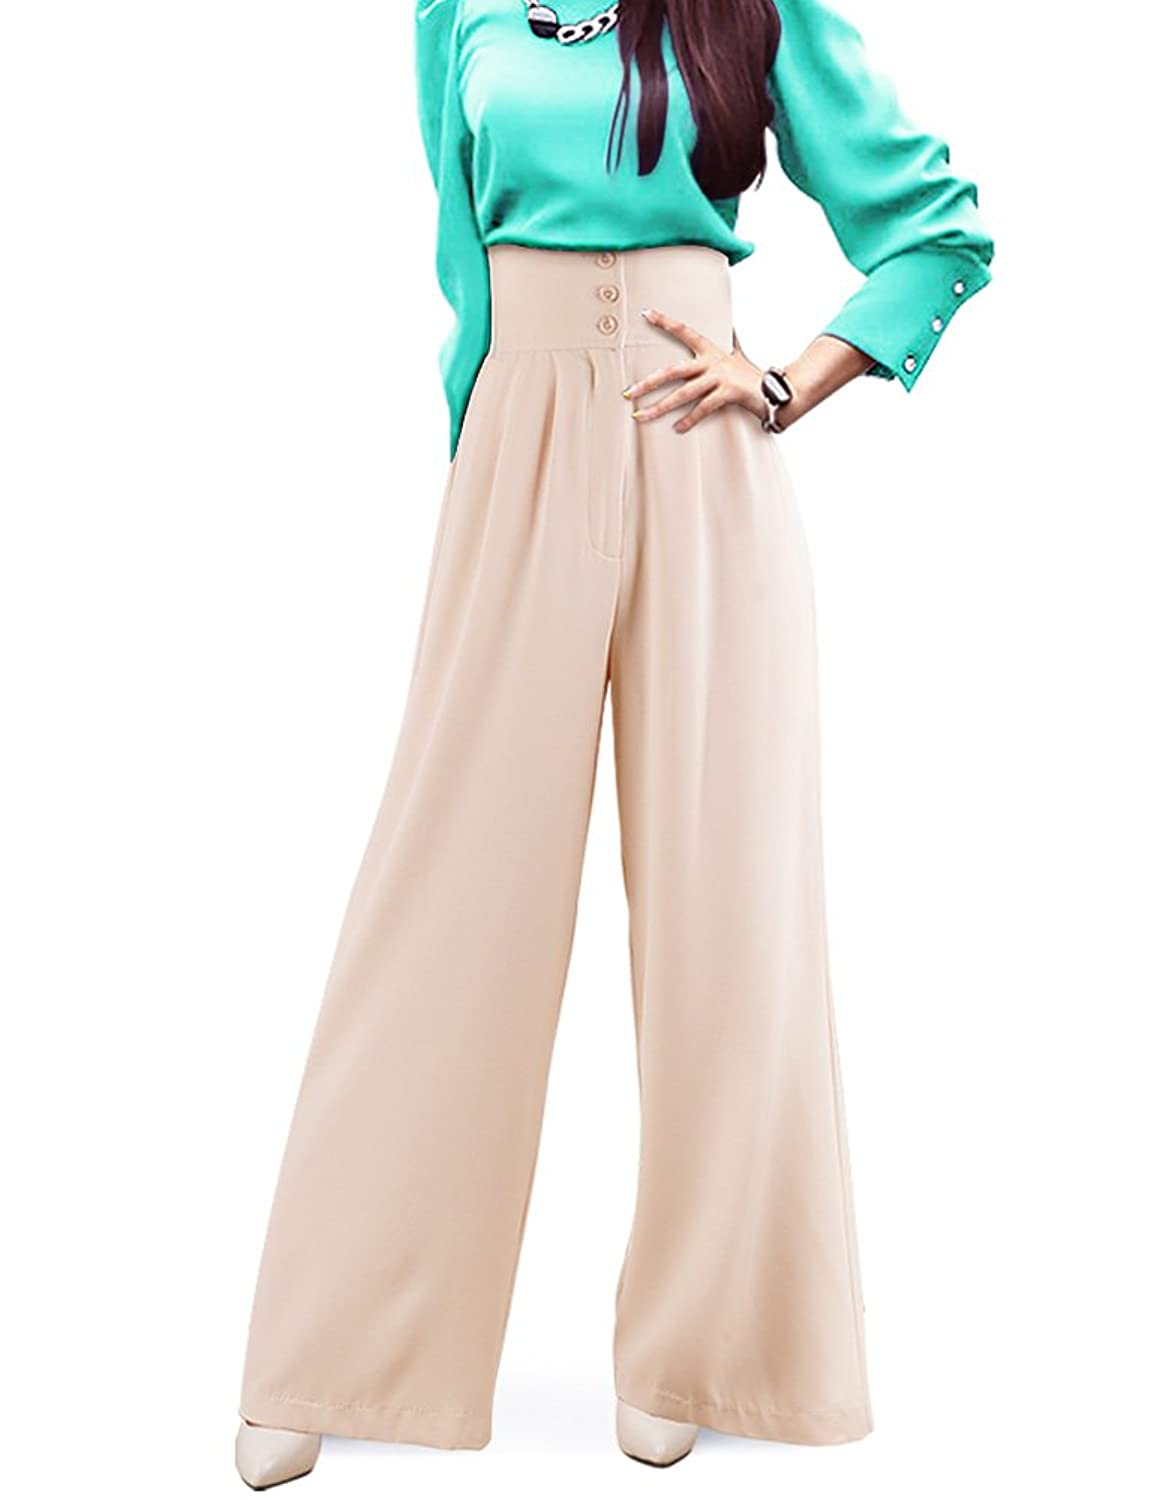 Did Women Wear Pants in the 1920s? Yes! sort of… DELUXSEY Silhouette-Lengthening High Waist Wide Leg Pants Palazzo Pants 4 Women $34.99 AT vintagedancer.com